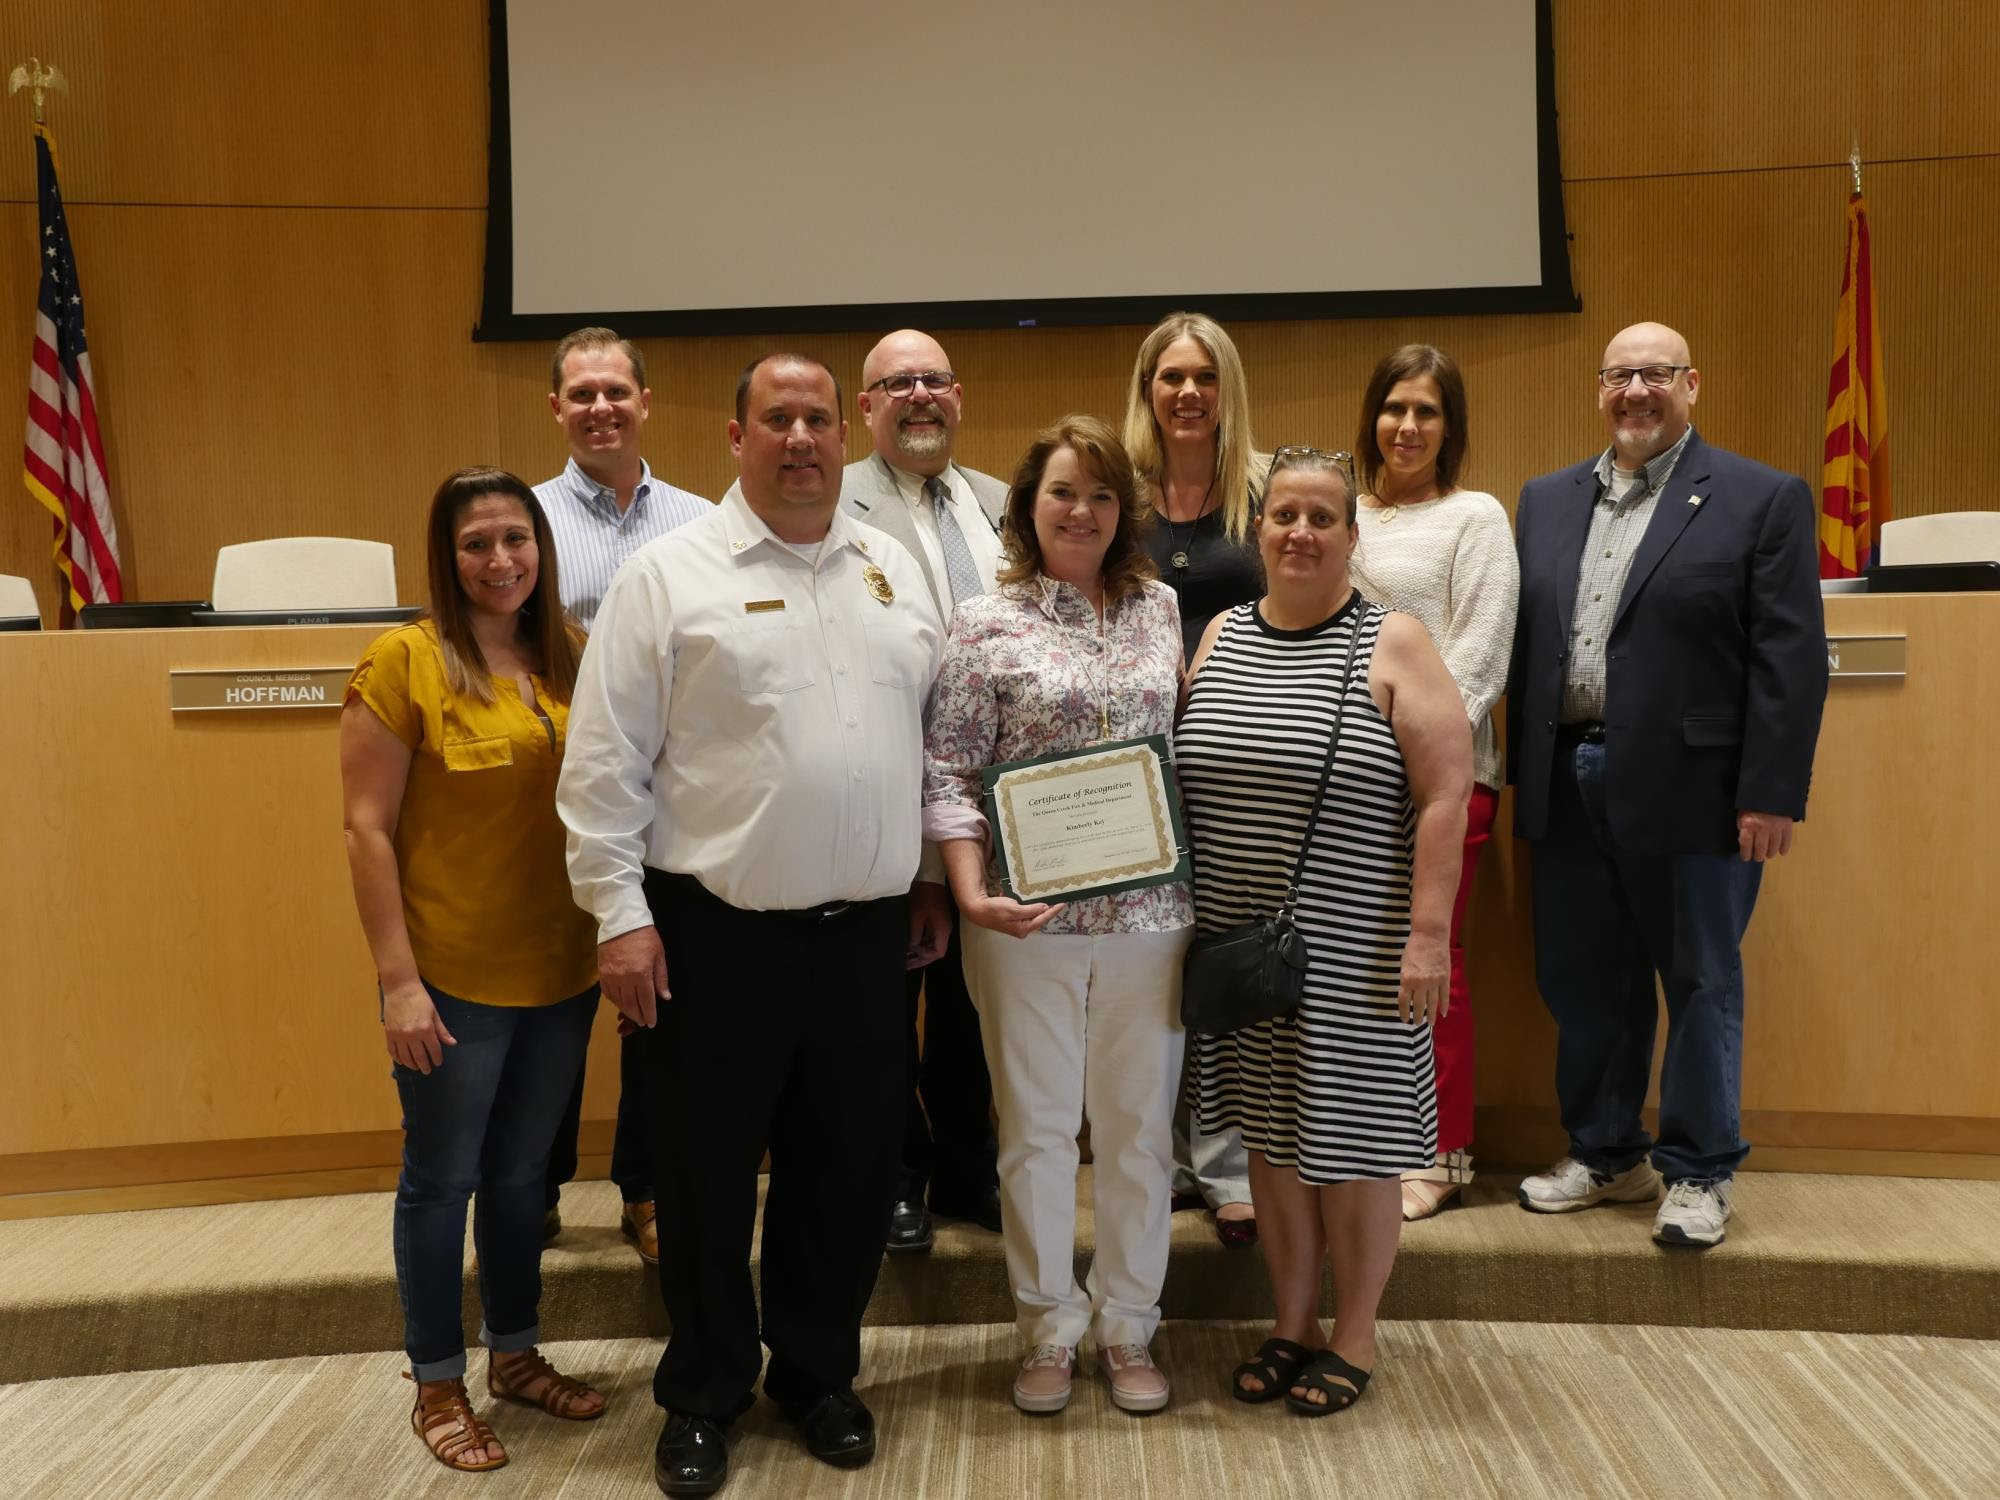 Vice Mayor Benning and the Town Council recognizing Recreation Technician Kimberly Key at the May 15 Town Council Meeting